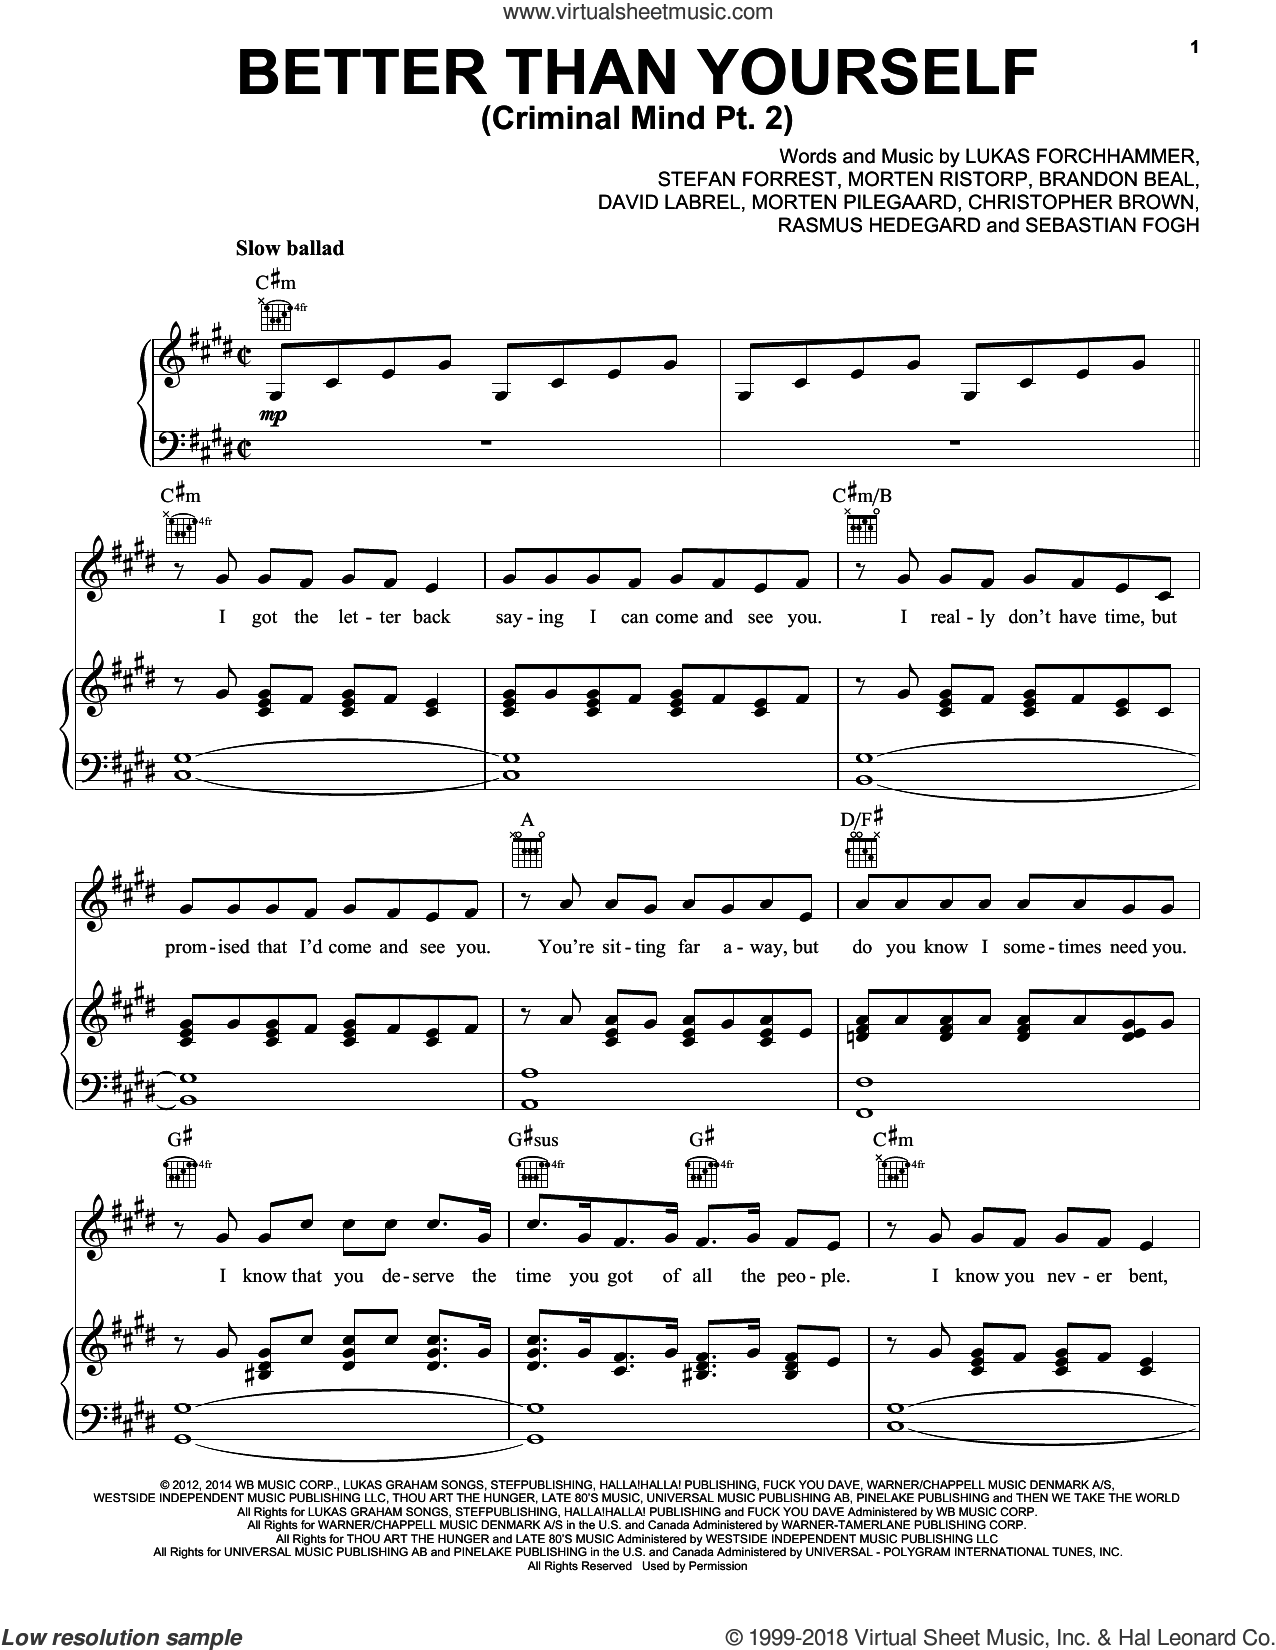 Better Than Yourself (Criminal Mind Part 2) sheet music for voice, piano or guitar by Stefan Forrest and Chris Brown. Score Image Preview.